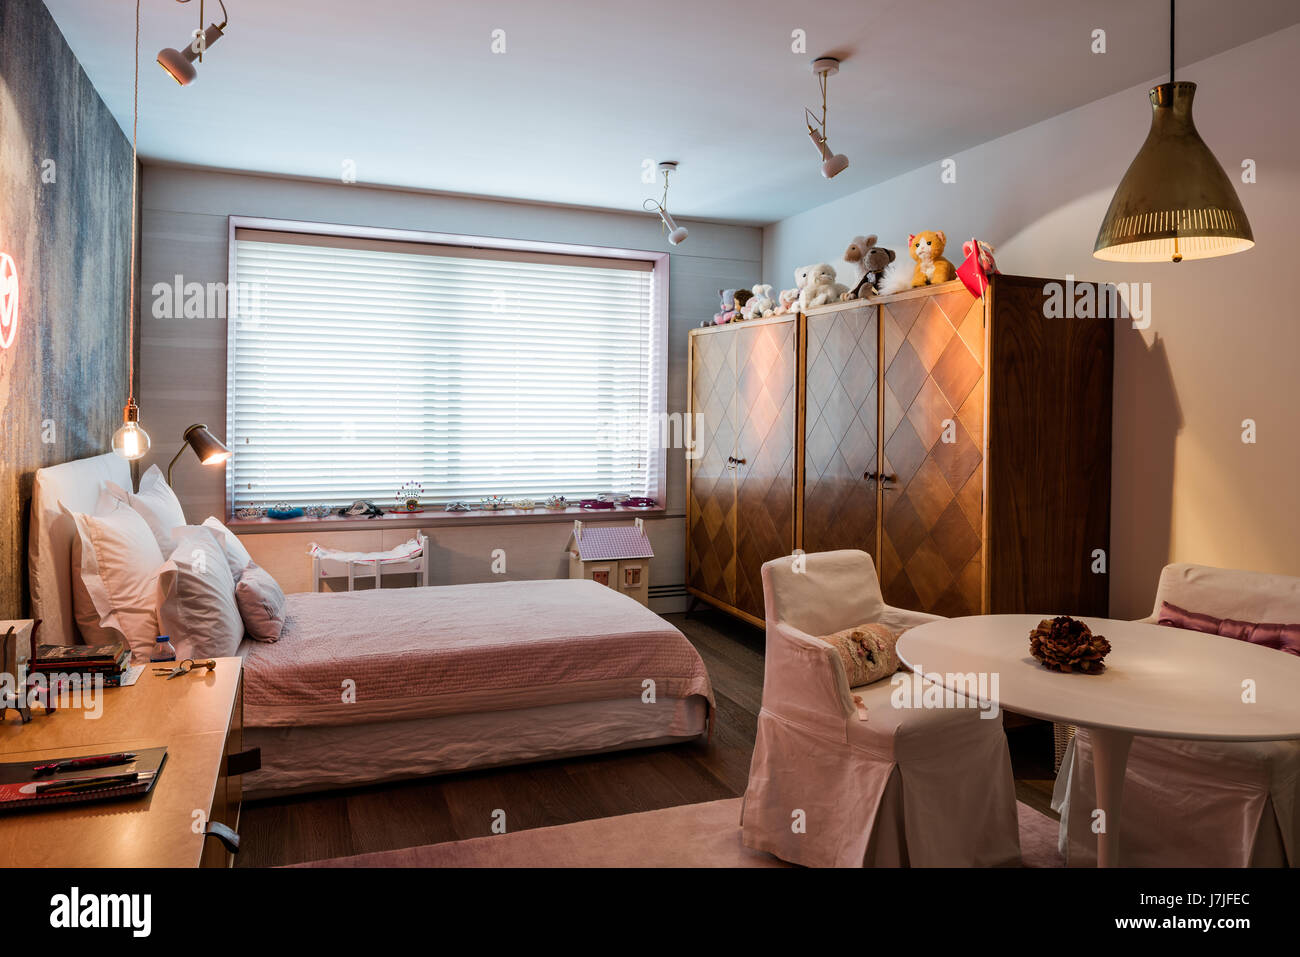 Soft toys on wardrobe in girl's room with closed Venetian blinds - Stock Image